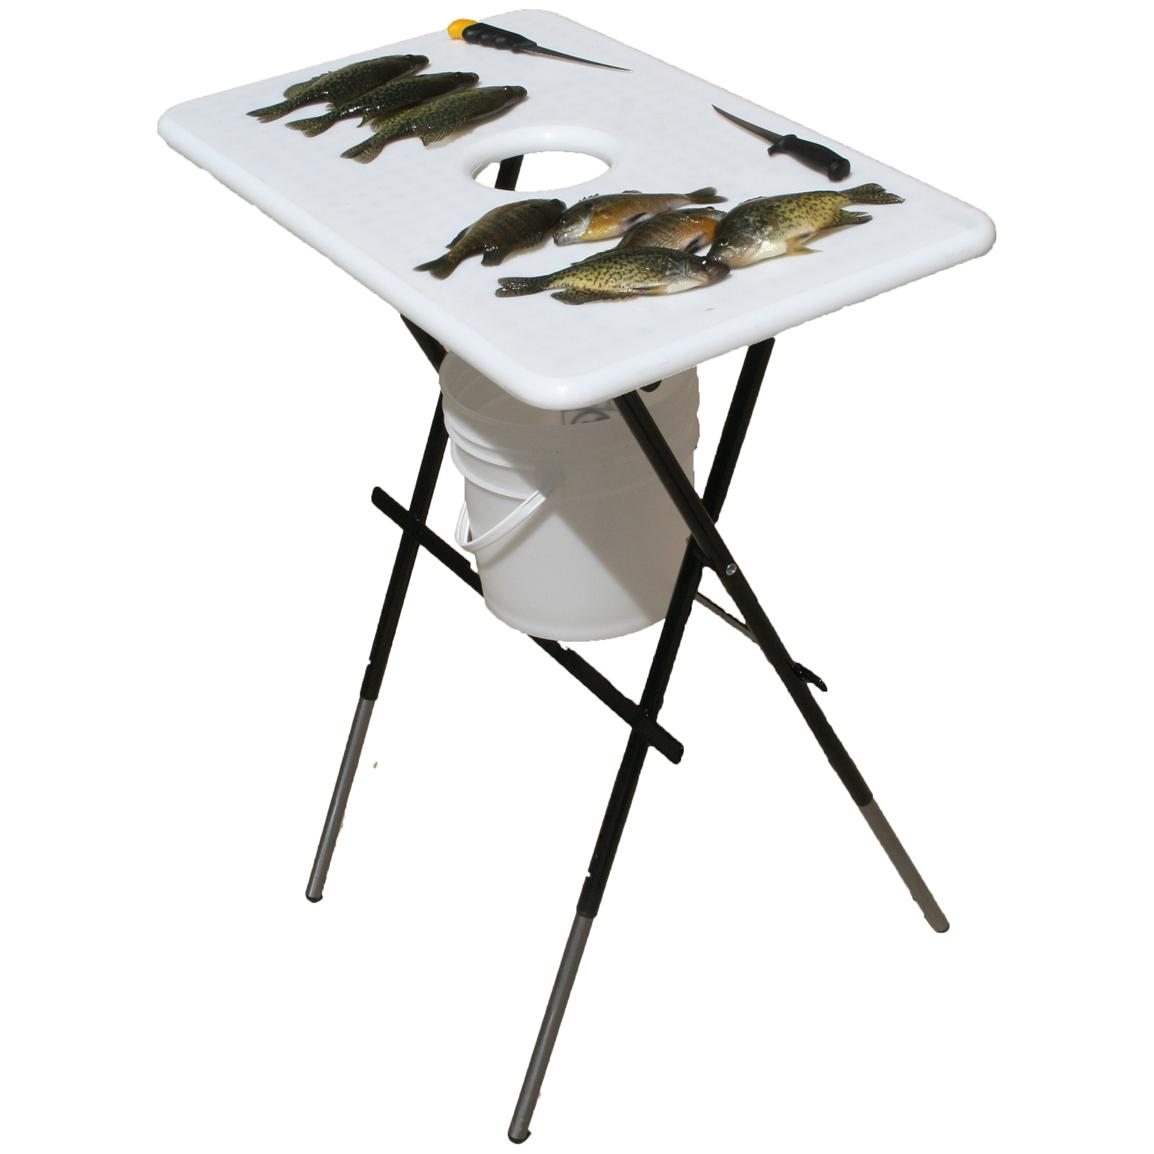 Clam Fish And Game Cleaning Table 194698 Ice Fishing